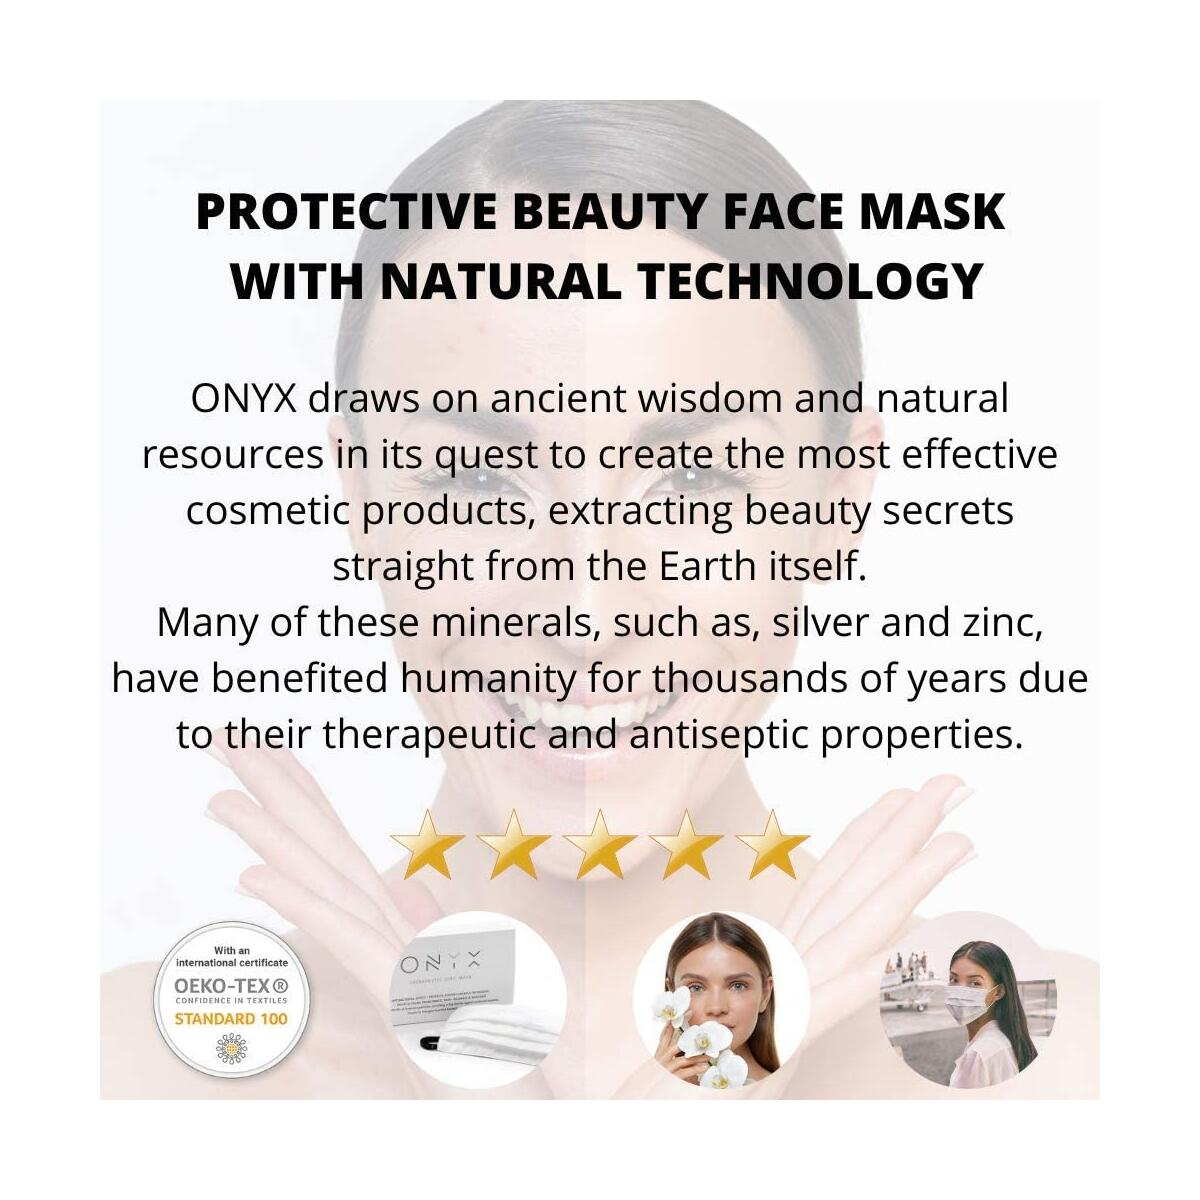 ONYX Beauty ZINC Mask for Acne Fighting Also Helps with Other Skin Issues Technology Zinc Therapeutic Fabric Face Beauty Mask Active Zinc Ions-Minerals for Smooth Face